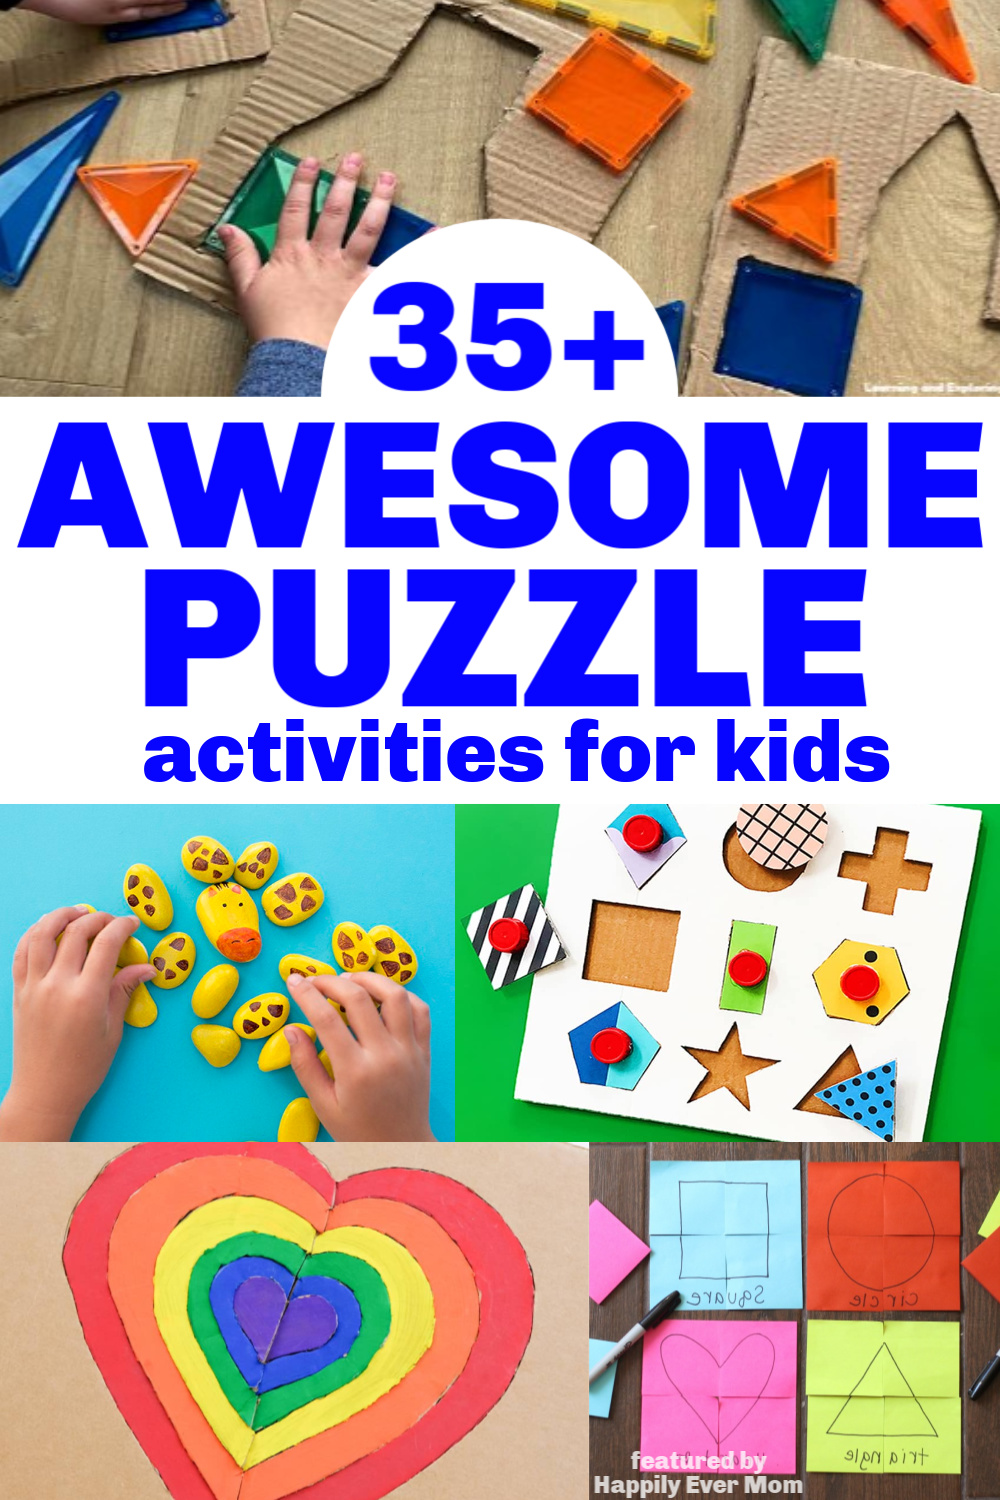 AWESOME activities for my kids! I love that there's a mix of puzzles you can make and activities to do with puzzles. Super fun.